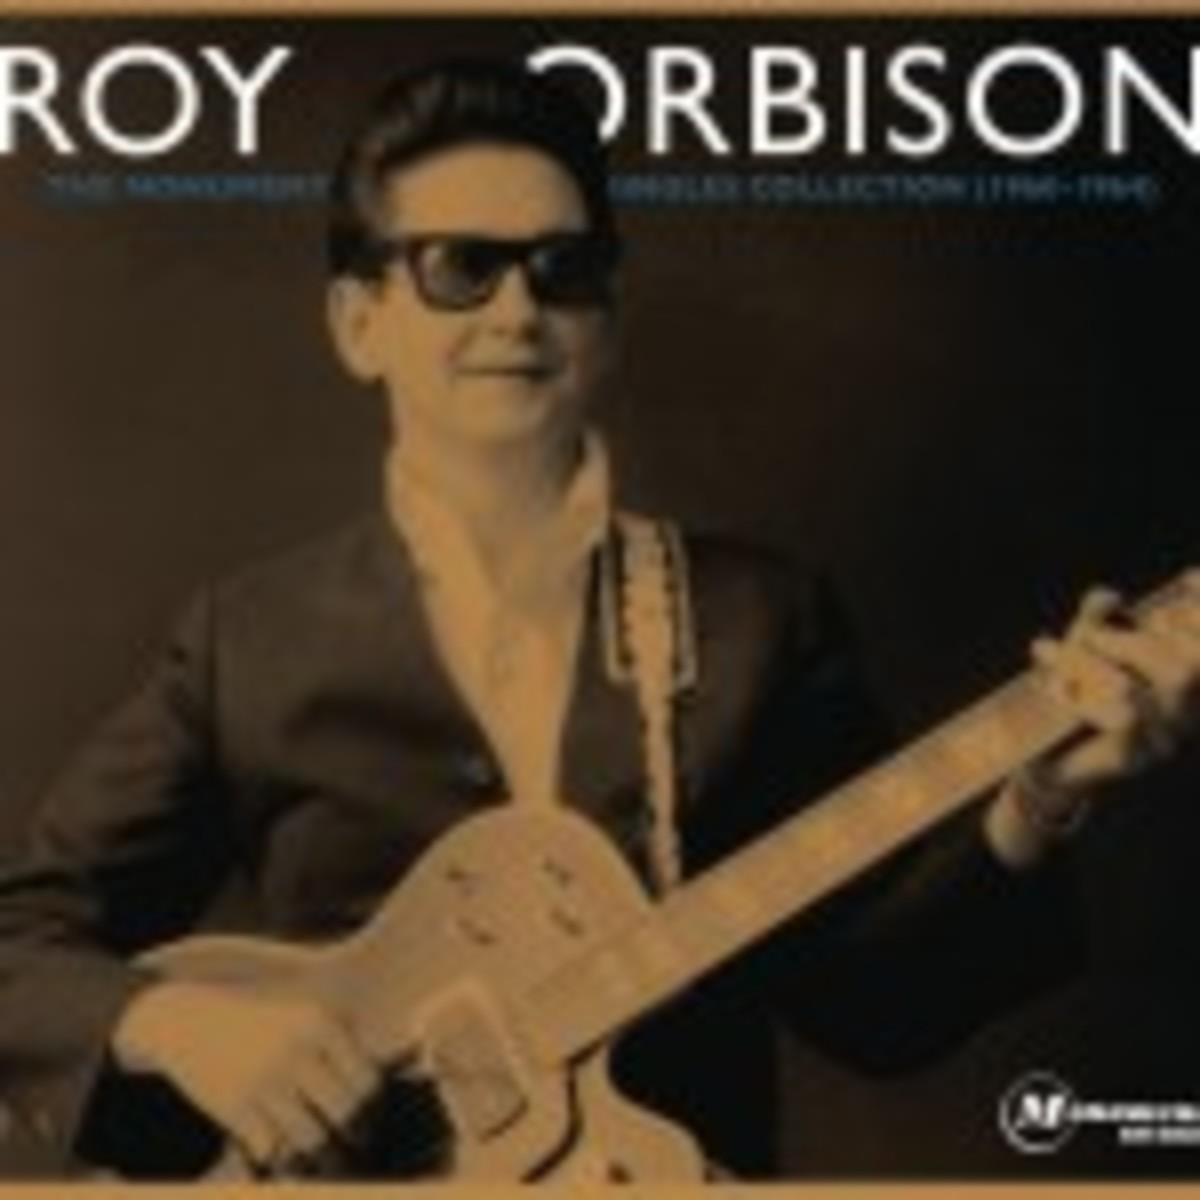 Roy Orbison Monument recordings